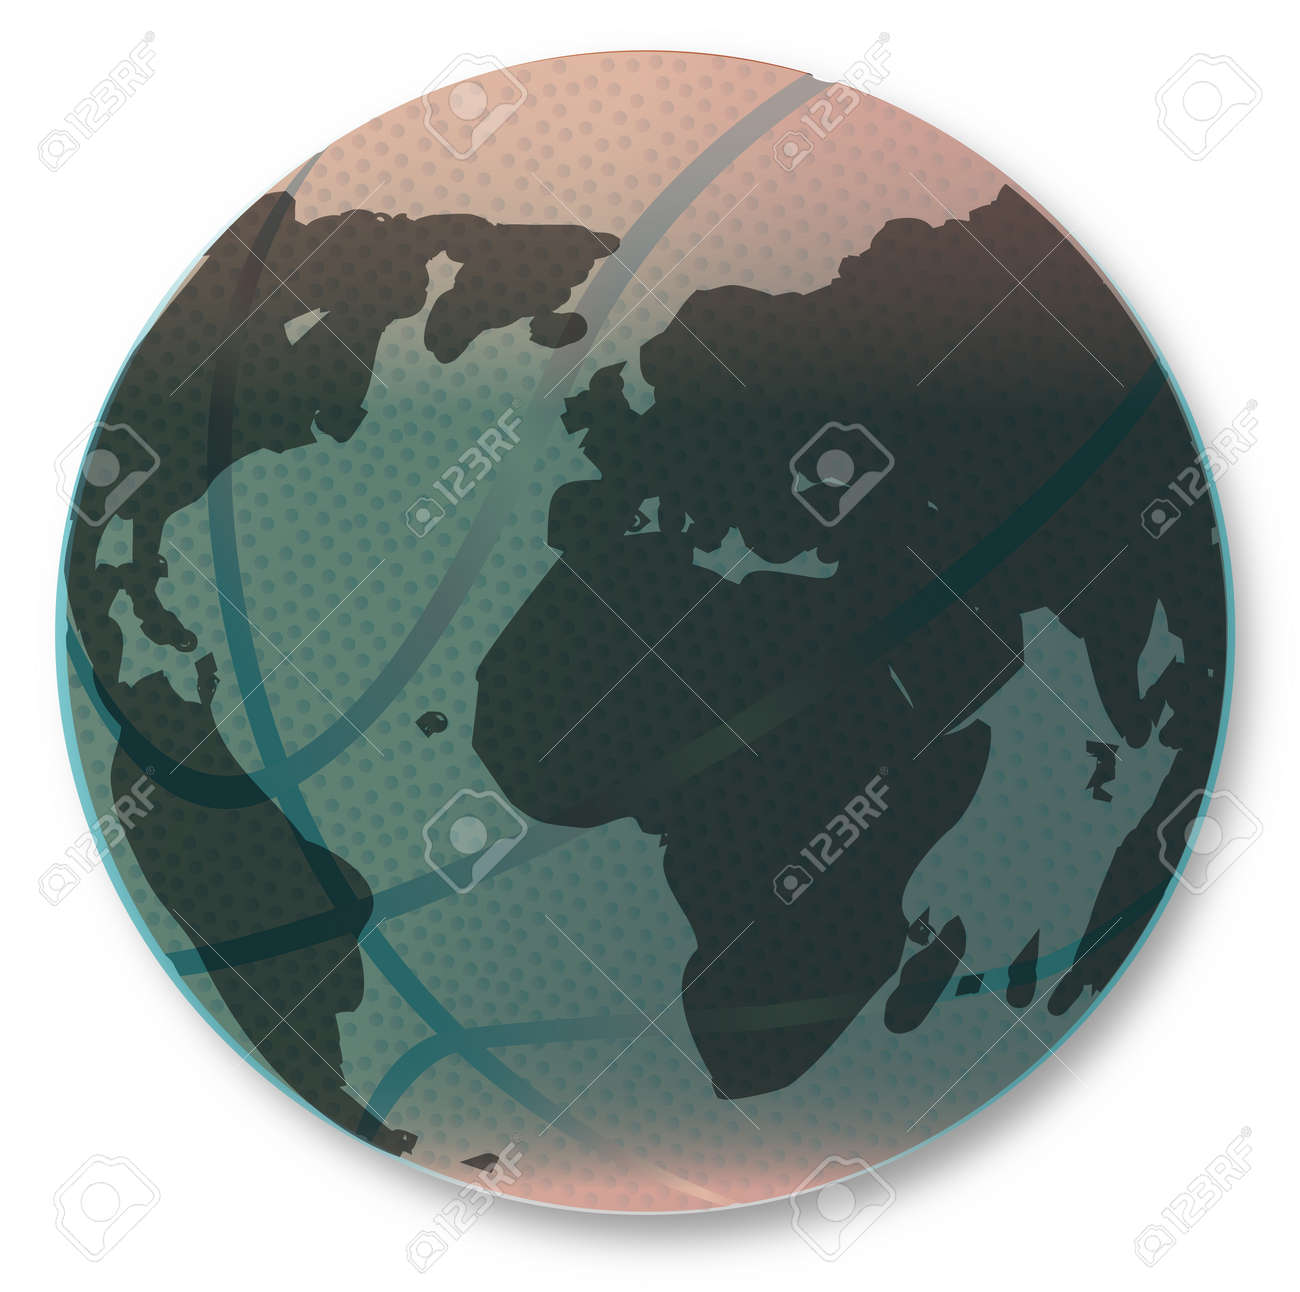 a large brown basketball with dimples and earth globe map isolated on a white background